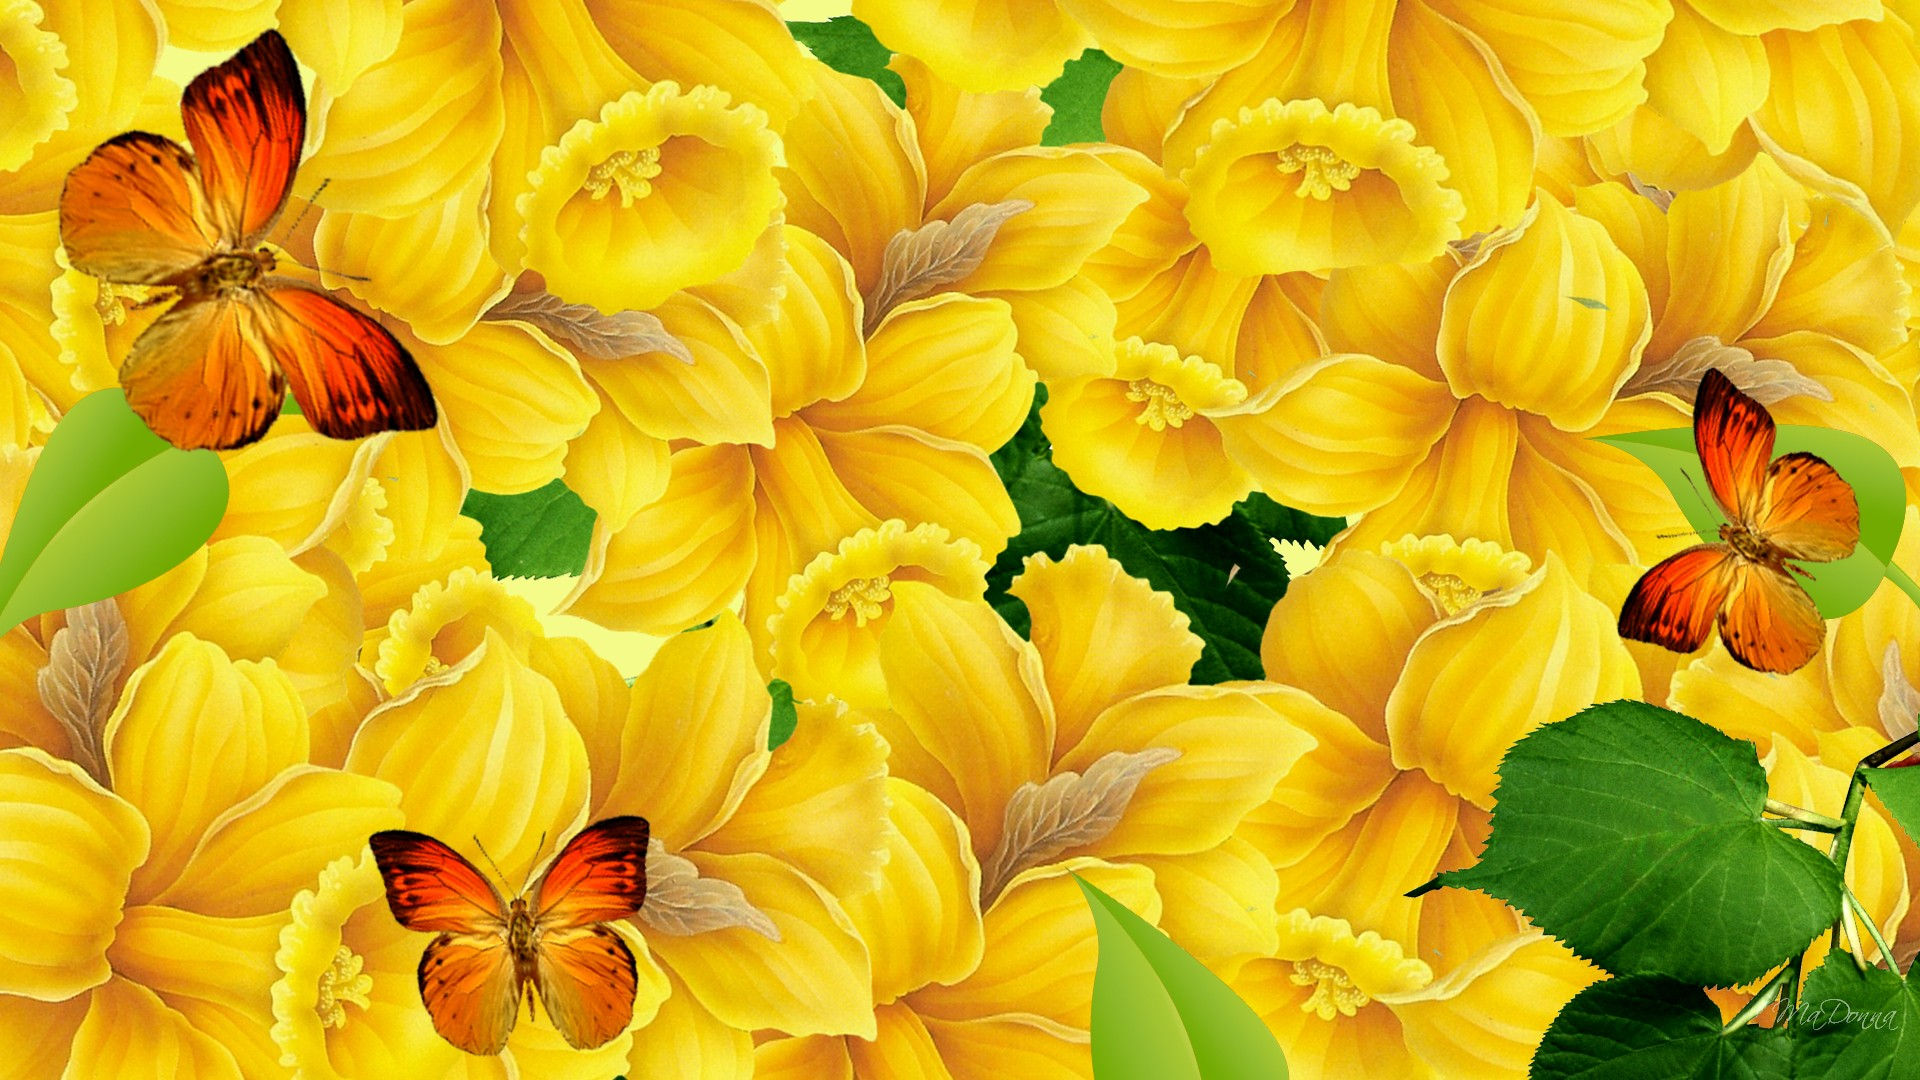 Awesome Colorful Butterflies HD backgrounds Unique HD Wallpapers 1920x1080